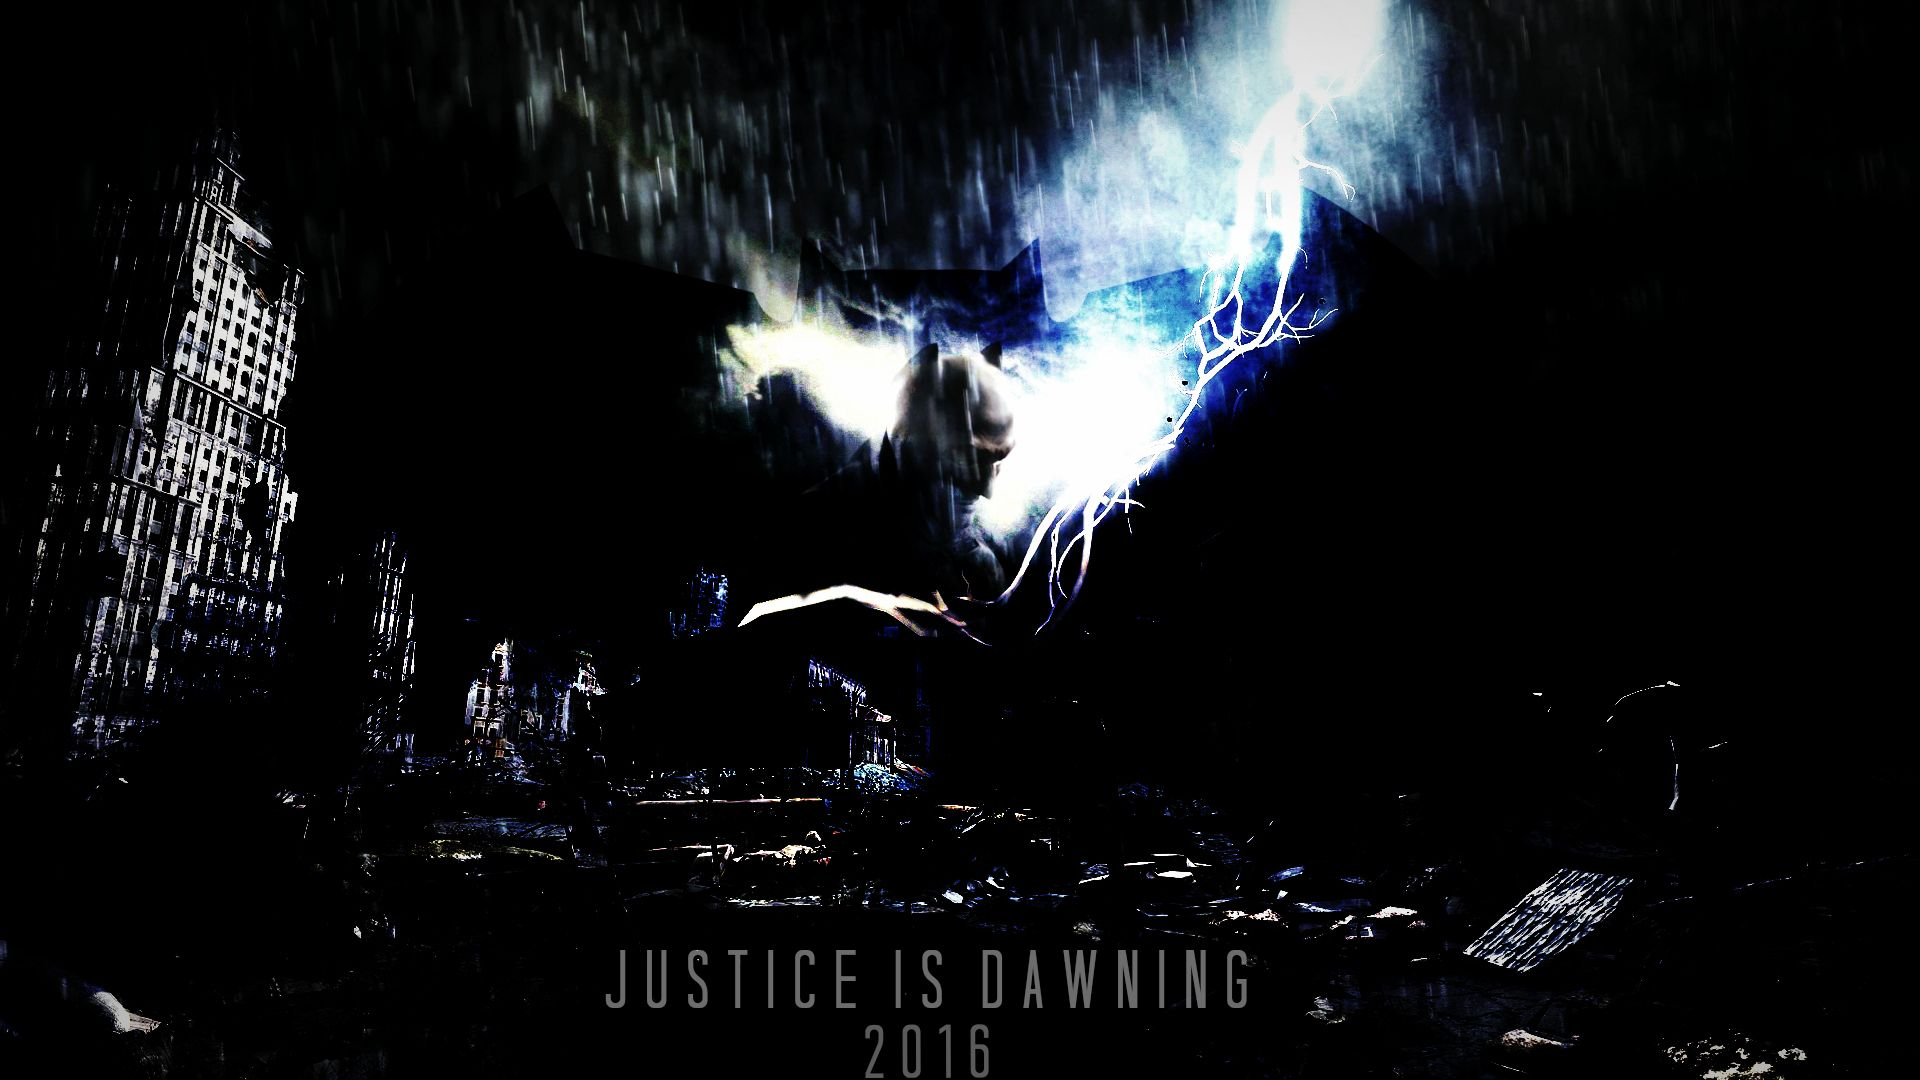 Batman V Superman Dawn Of Justice Gallery Images Posters Vs Wallpapers